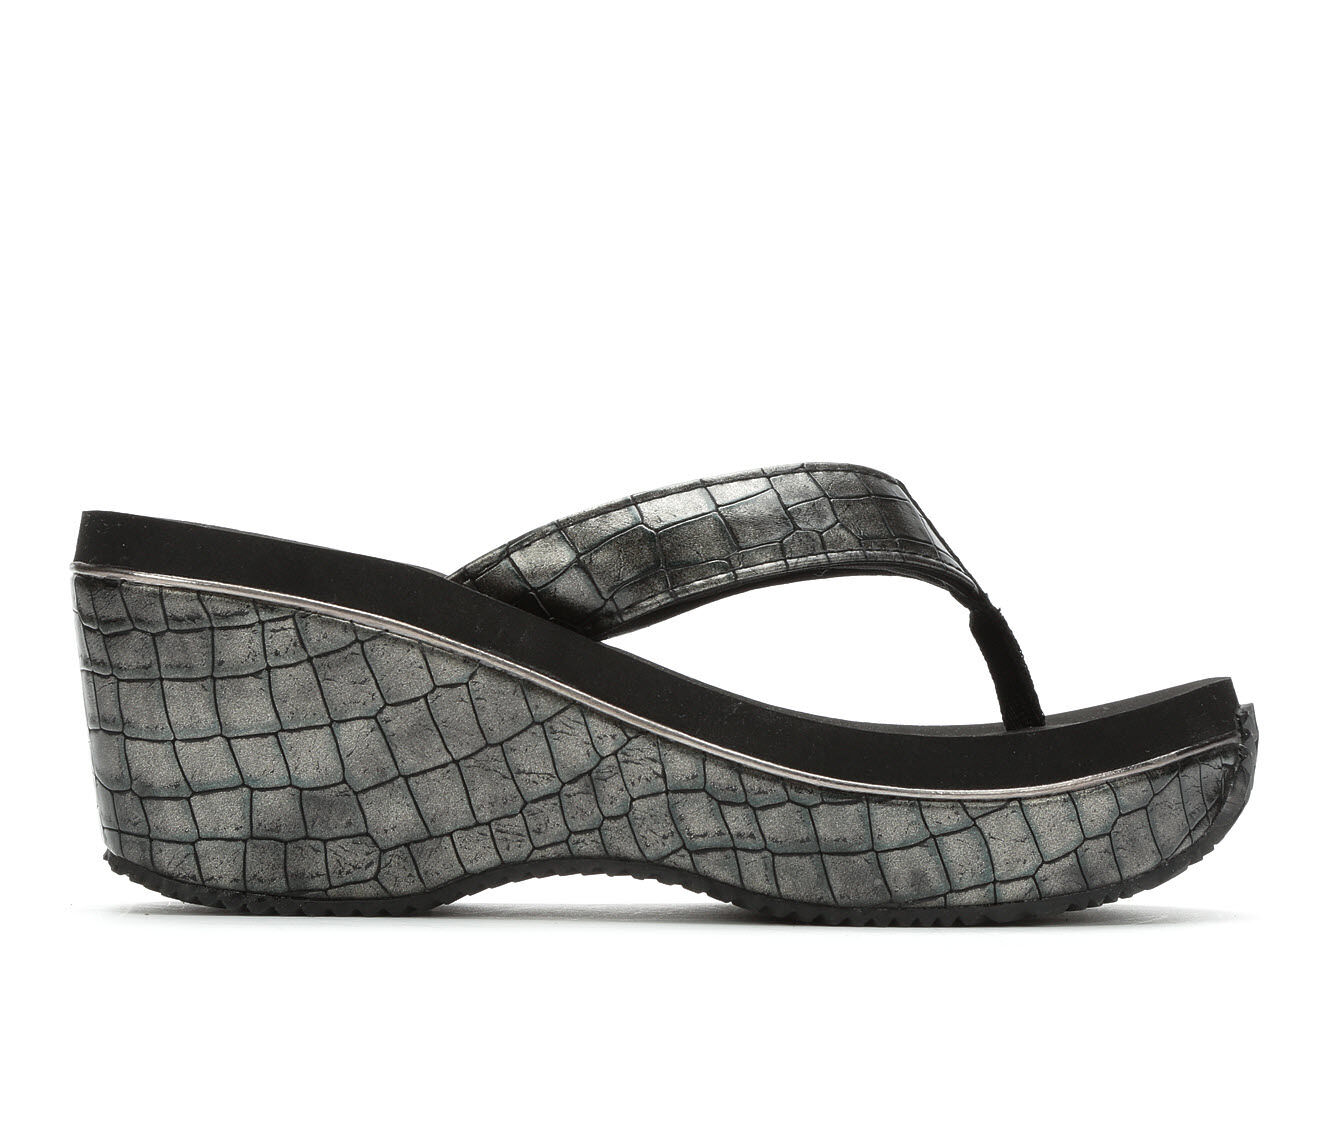 Women's Volatile Grotto Platform Wedge Flip-Flops clearance outlet cheap online outlet online shop free shipping pay with paypal DhePh